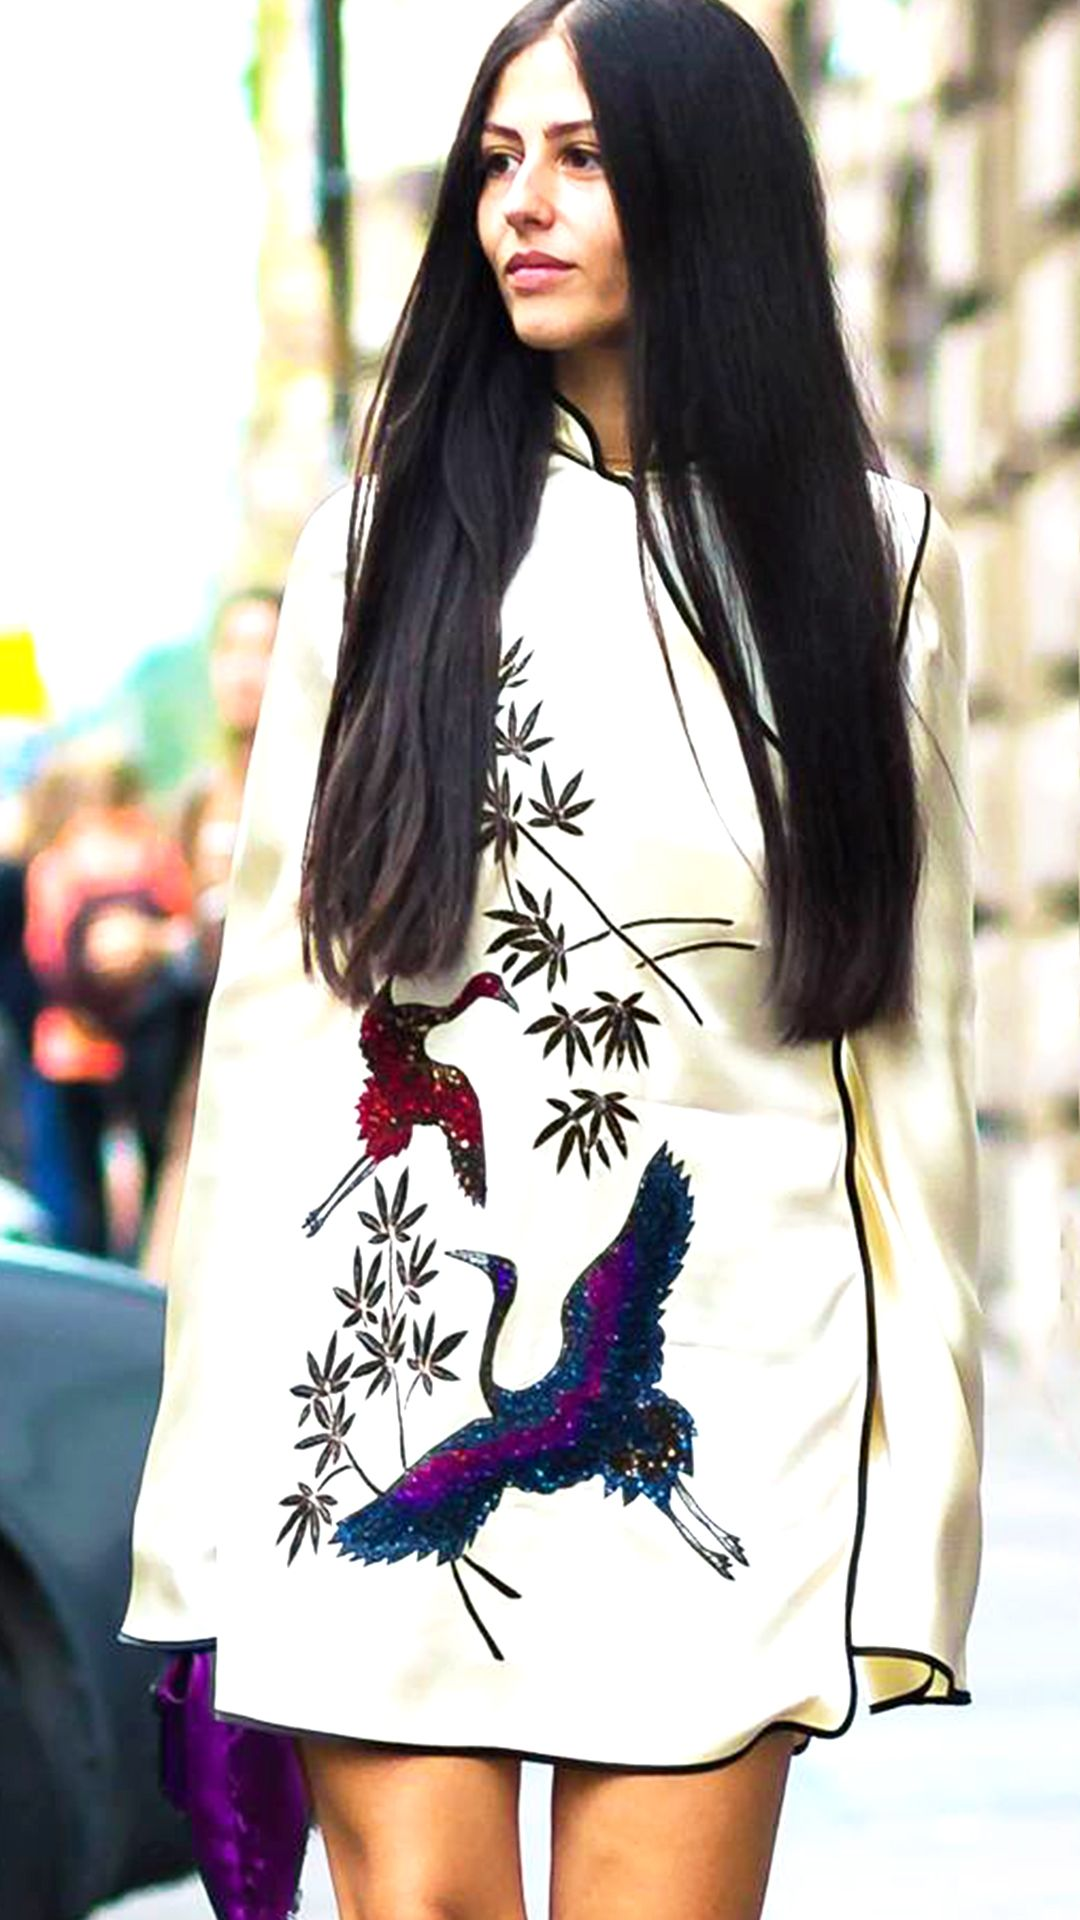 f4289221c How to Dress for Chinese New Year If You Have No Idea in 2019 ...